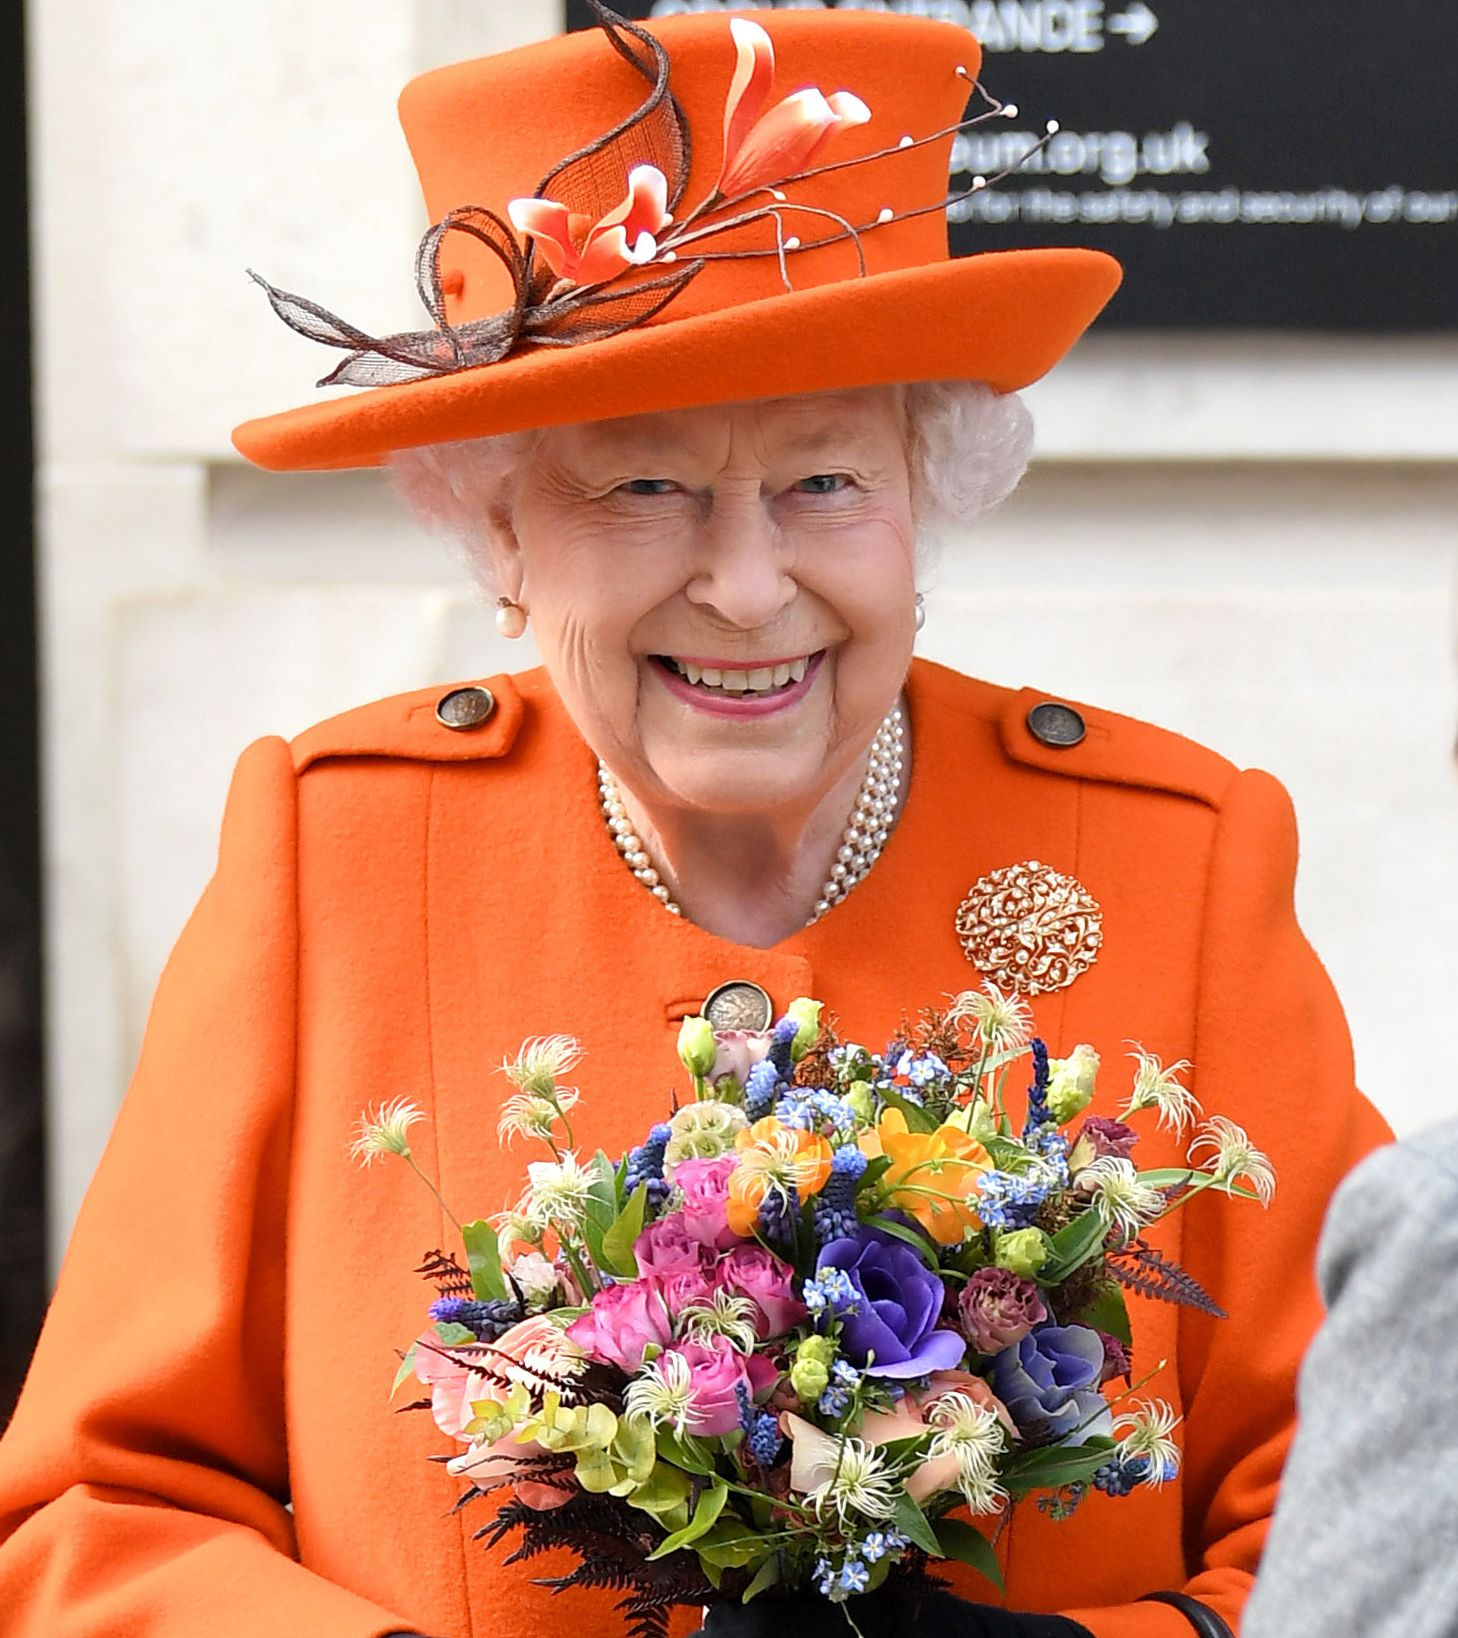 You can now apply to be in charge of the Queen's social media and where do we sign up?